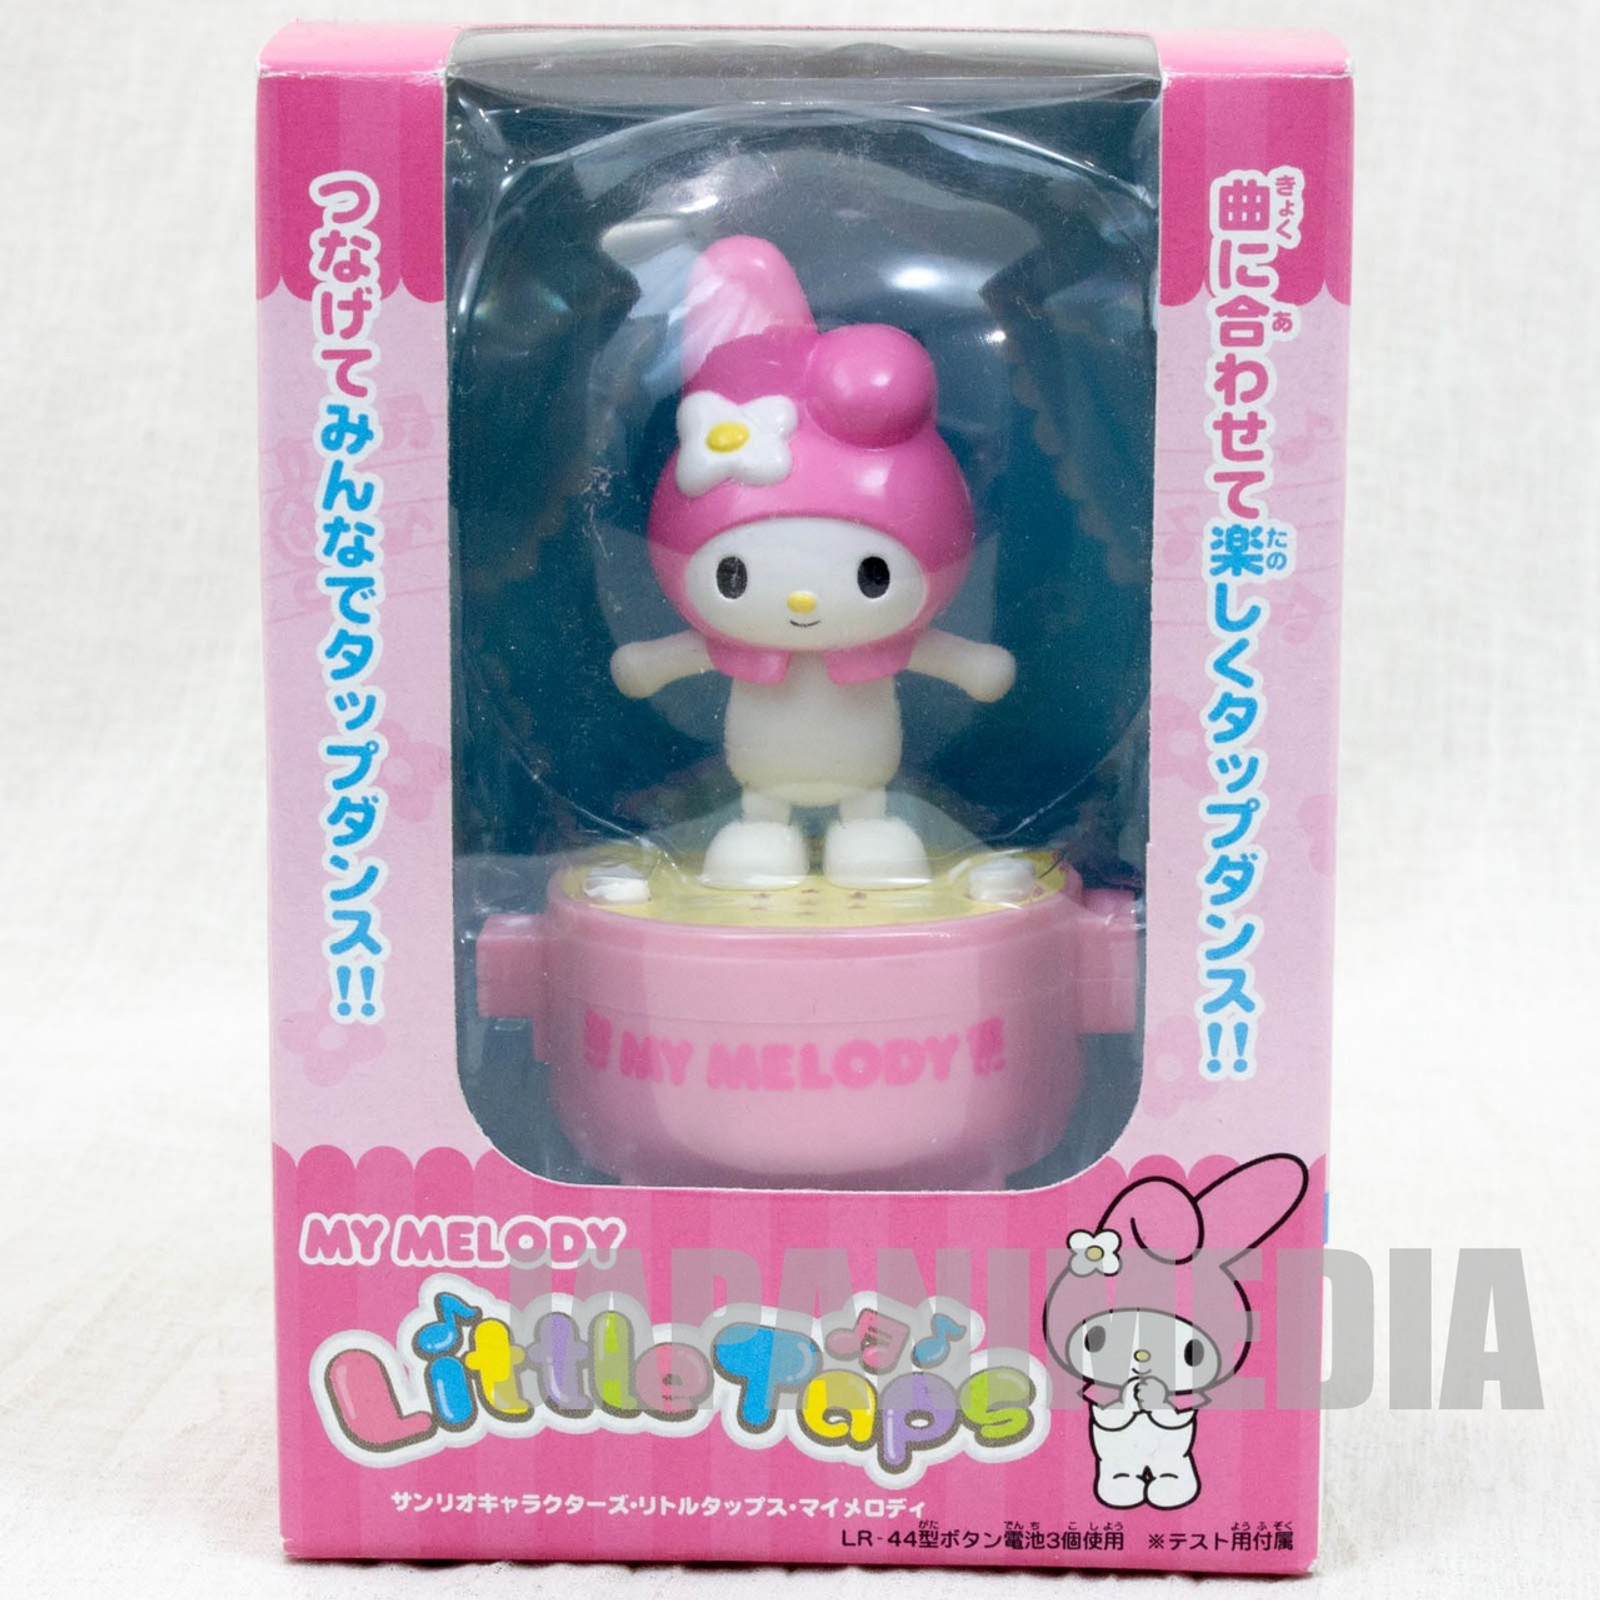 Sanrio Characters My Melody Little Taps Sound Toy Figure JAPAN ANIME